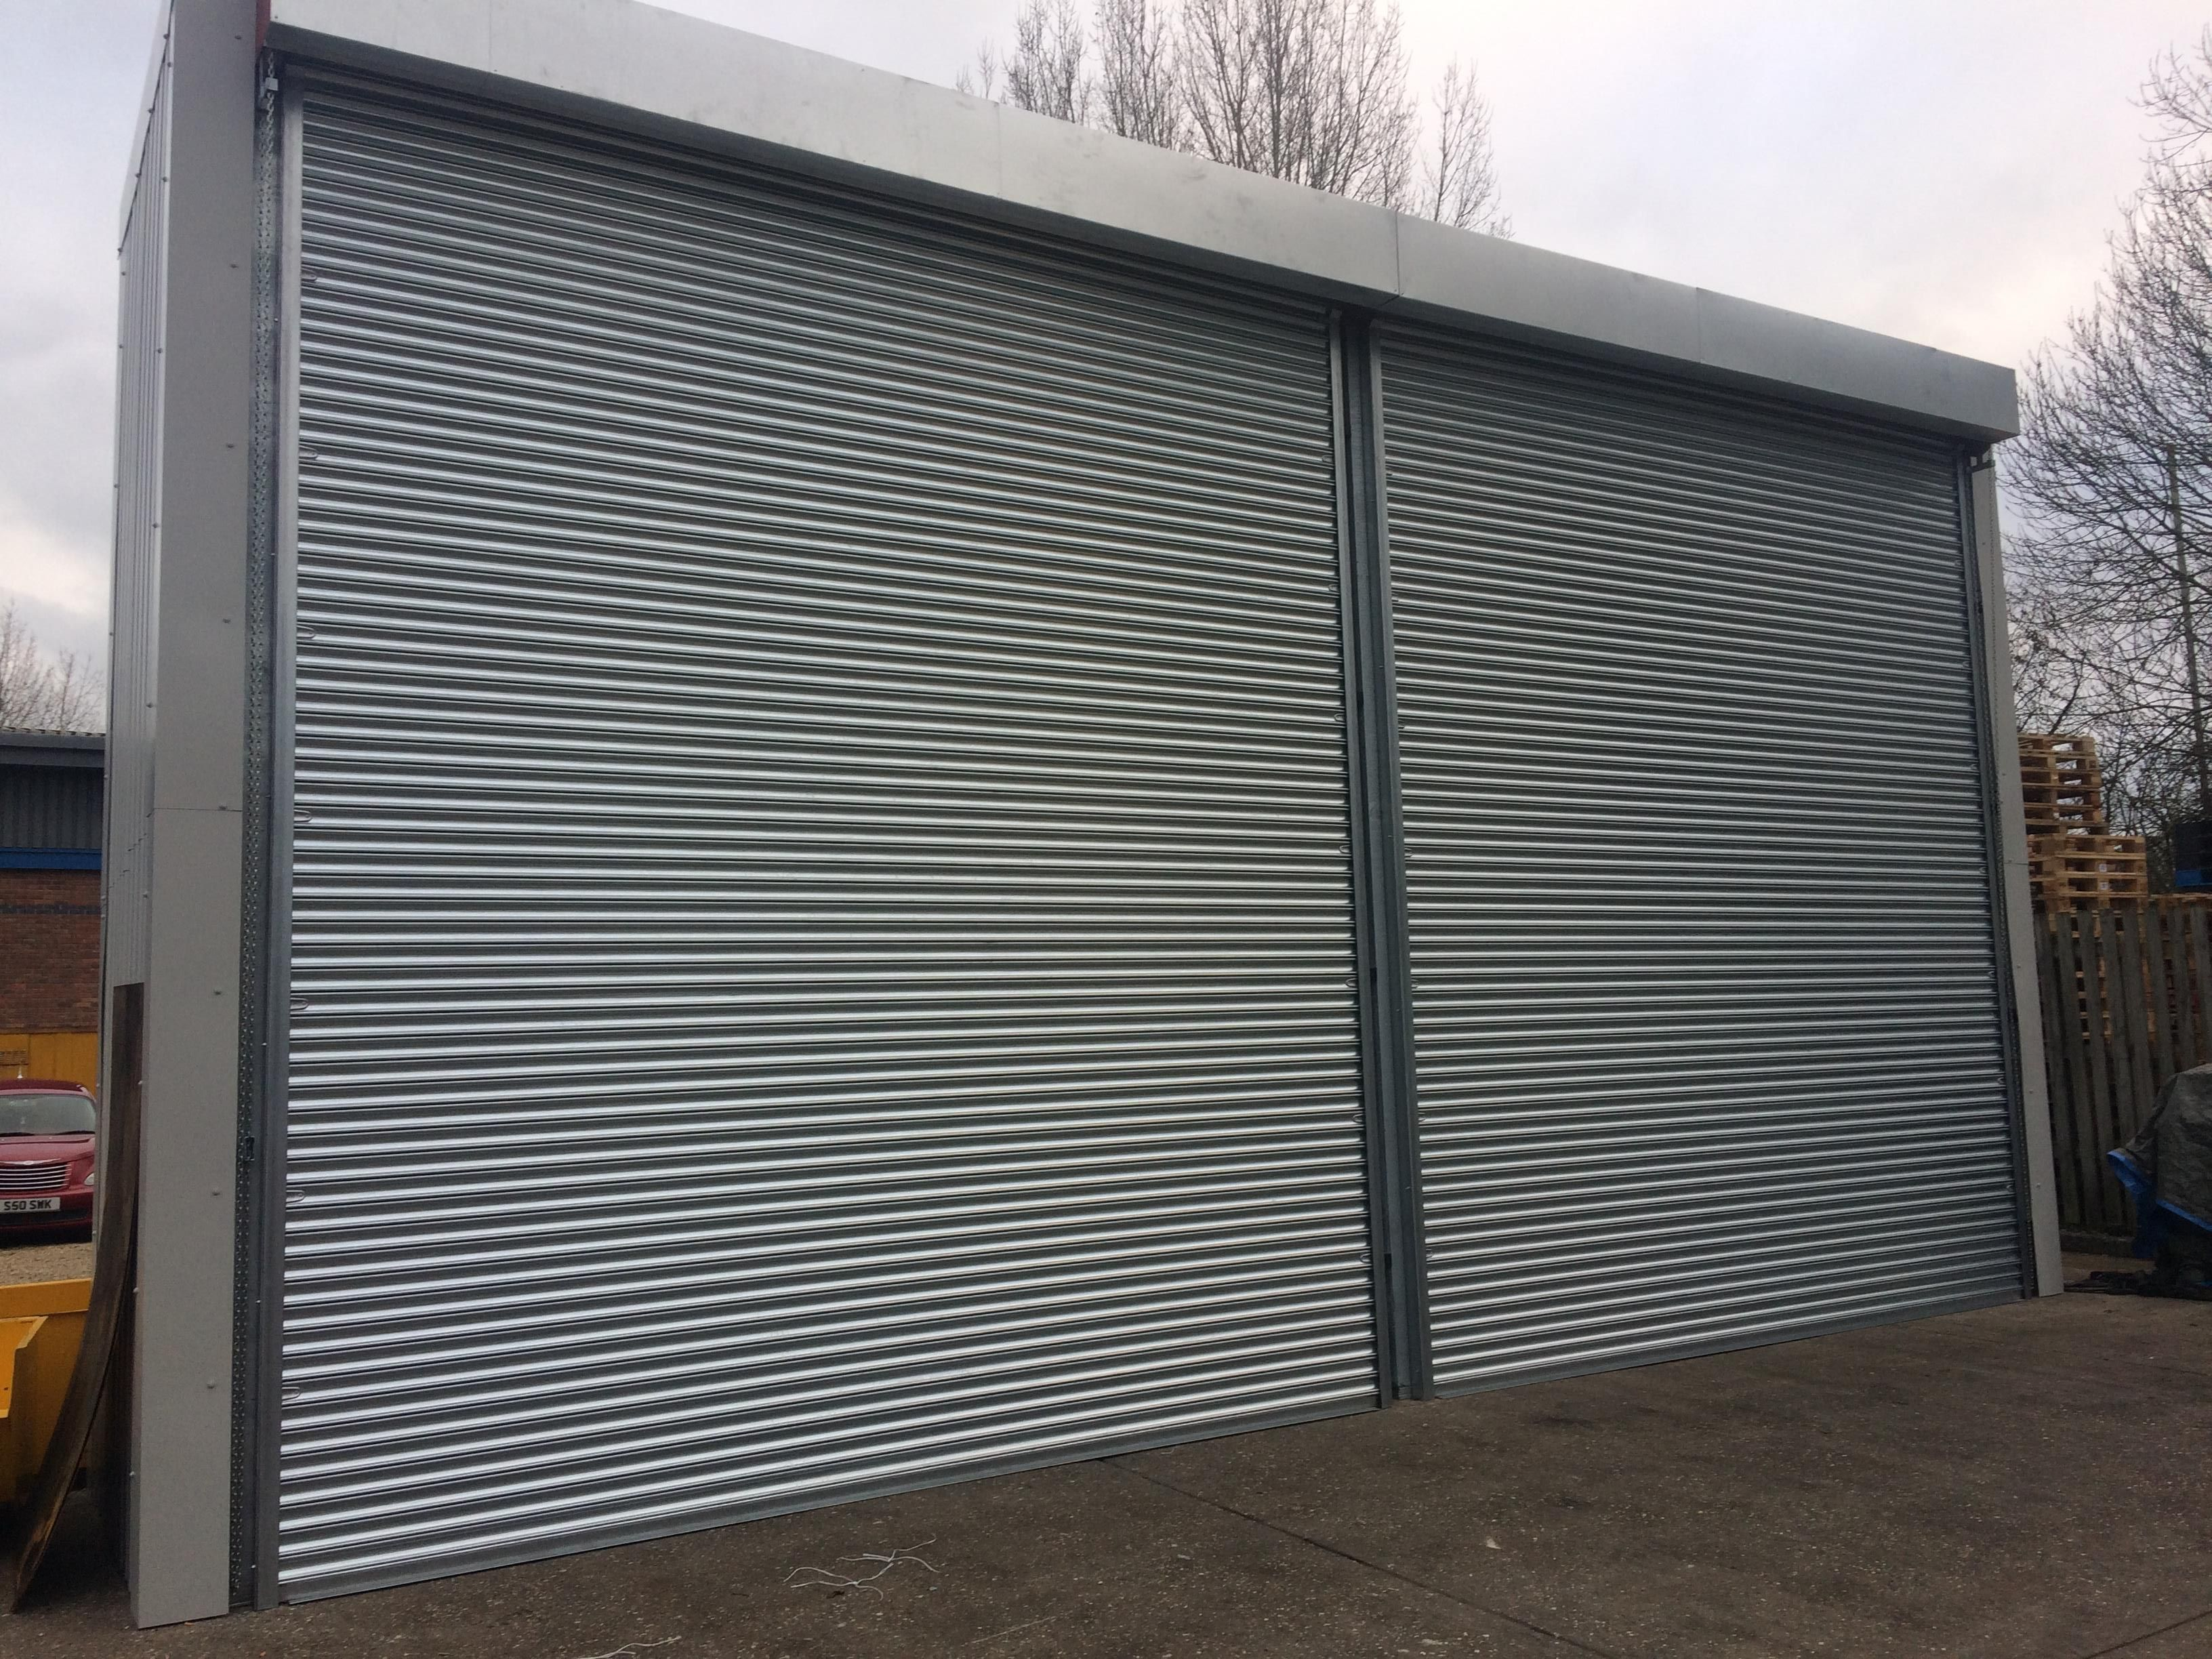 Roller shutter doors fitted to external storage unit in cheshire .worcesterdoors.co. & Roller shutter doors fitted to external storage unit in cheshire www ...